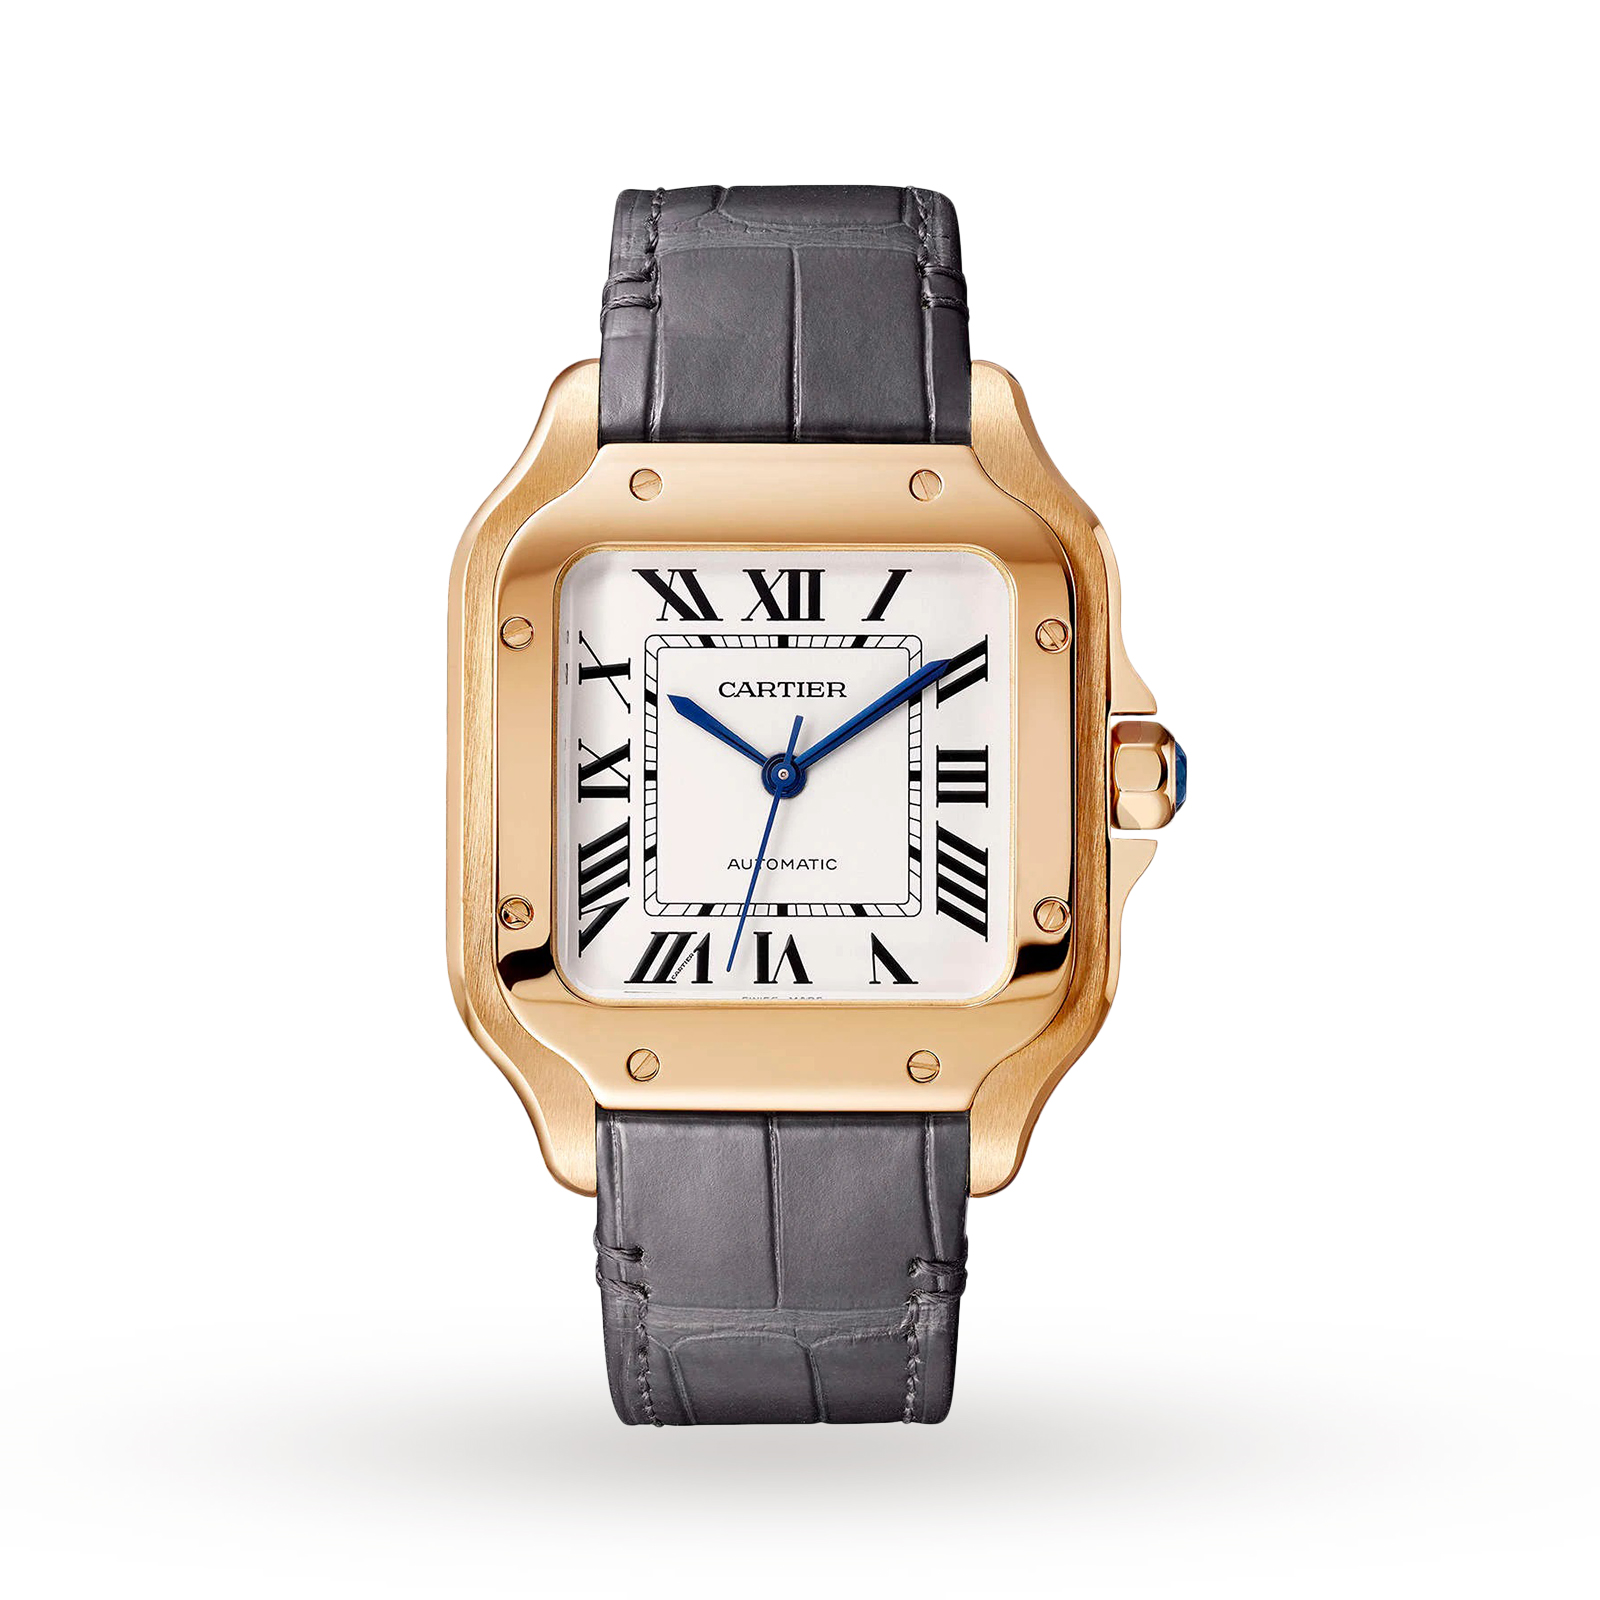 cartier h ixlib santos introducing collection articles watches rails the